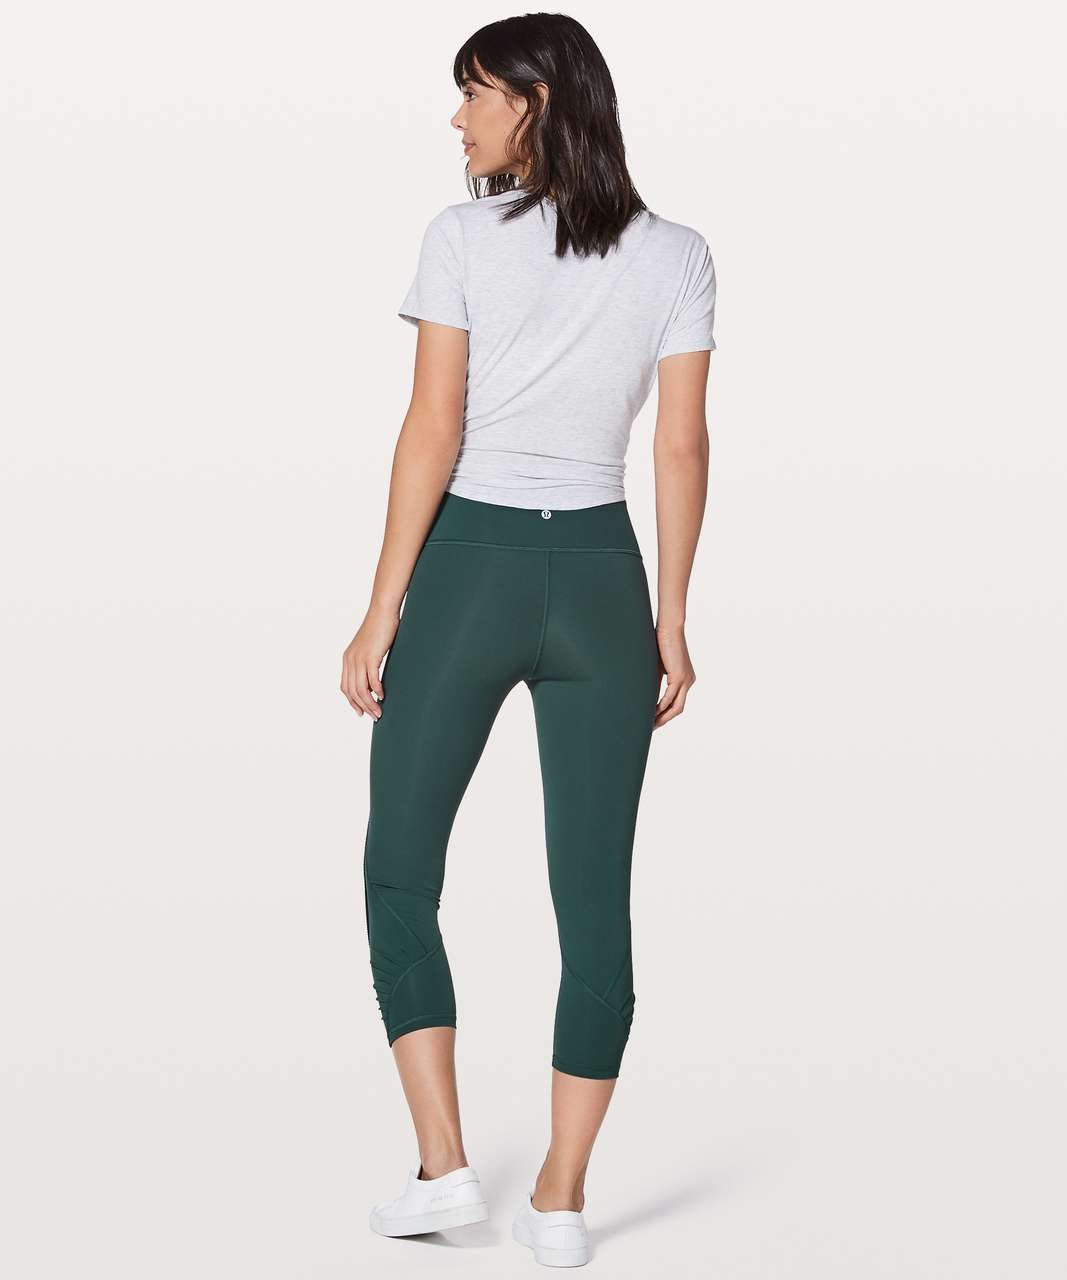 "Lululemon Wunder Under Crop (Hi-Rise) Pleat 21"" - Teal Shadow"